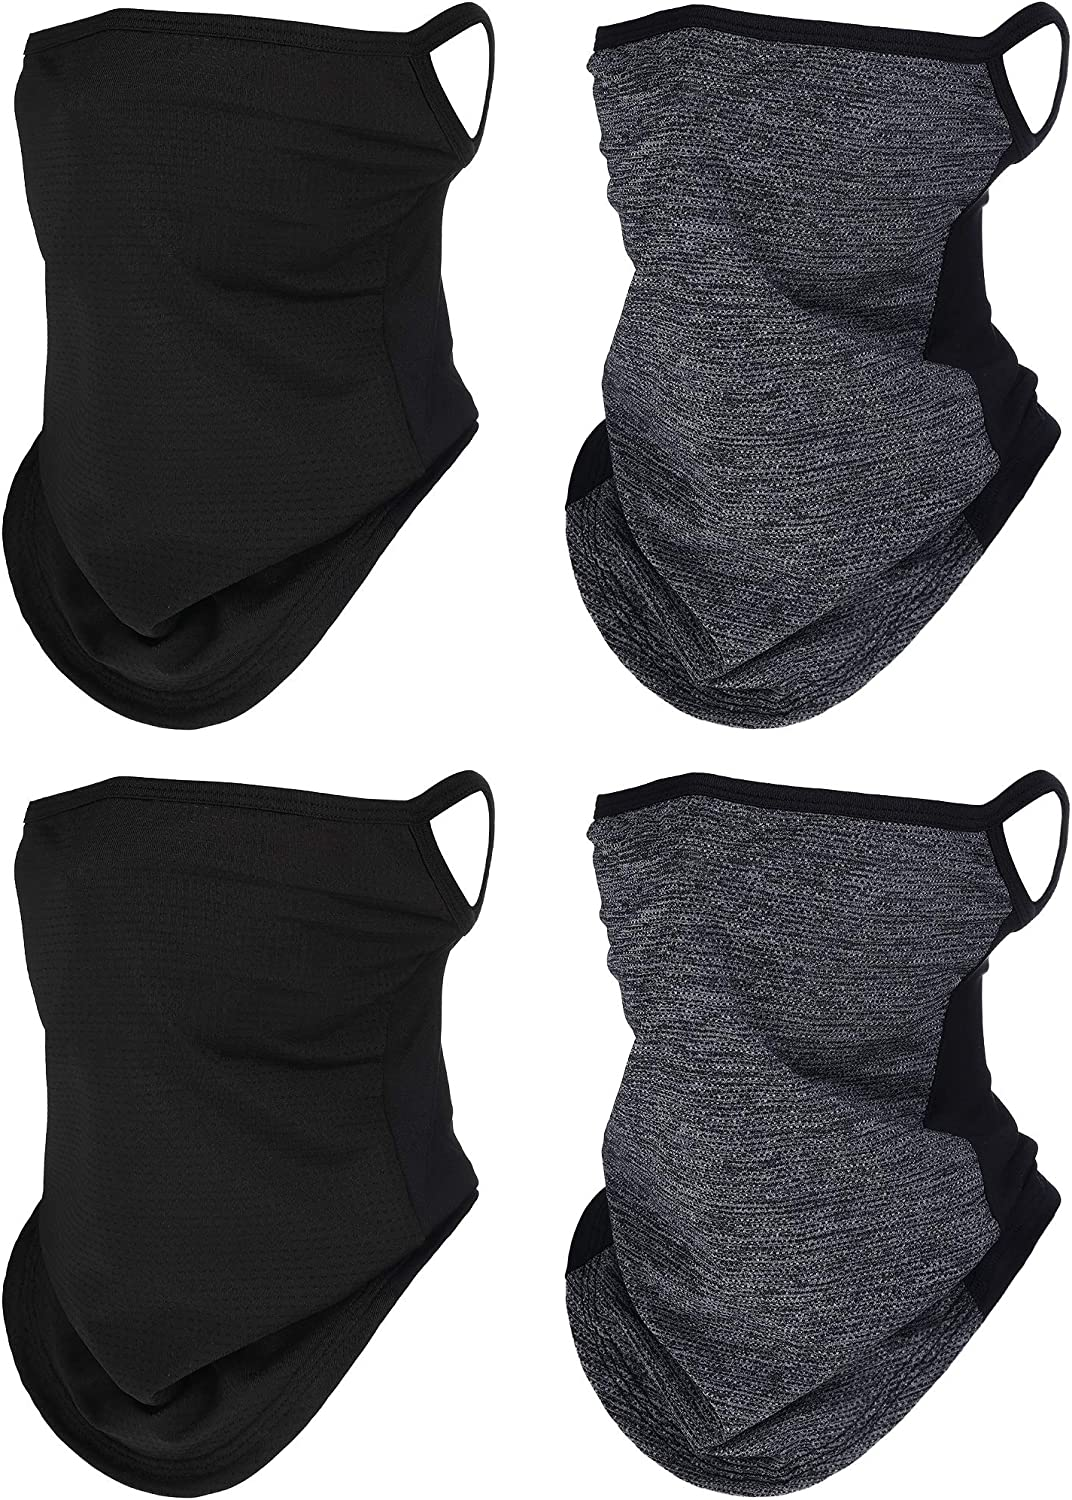 4 Pieces Neck Gaiter Face Covers with Ear Hangers Non-Slip Breathable Face Scarf UV Protection Balaclava Headwear